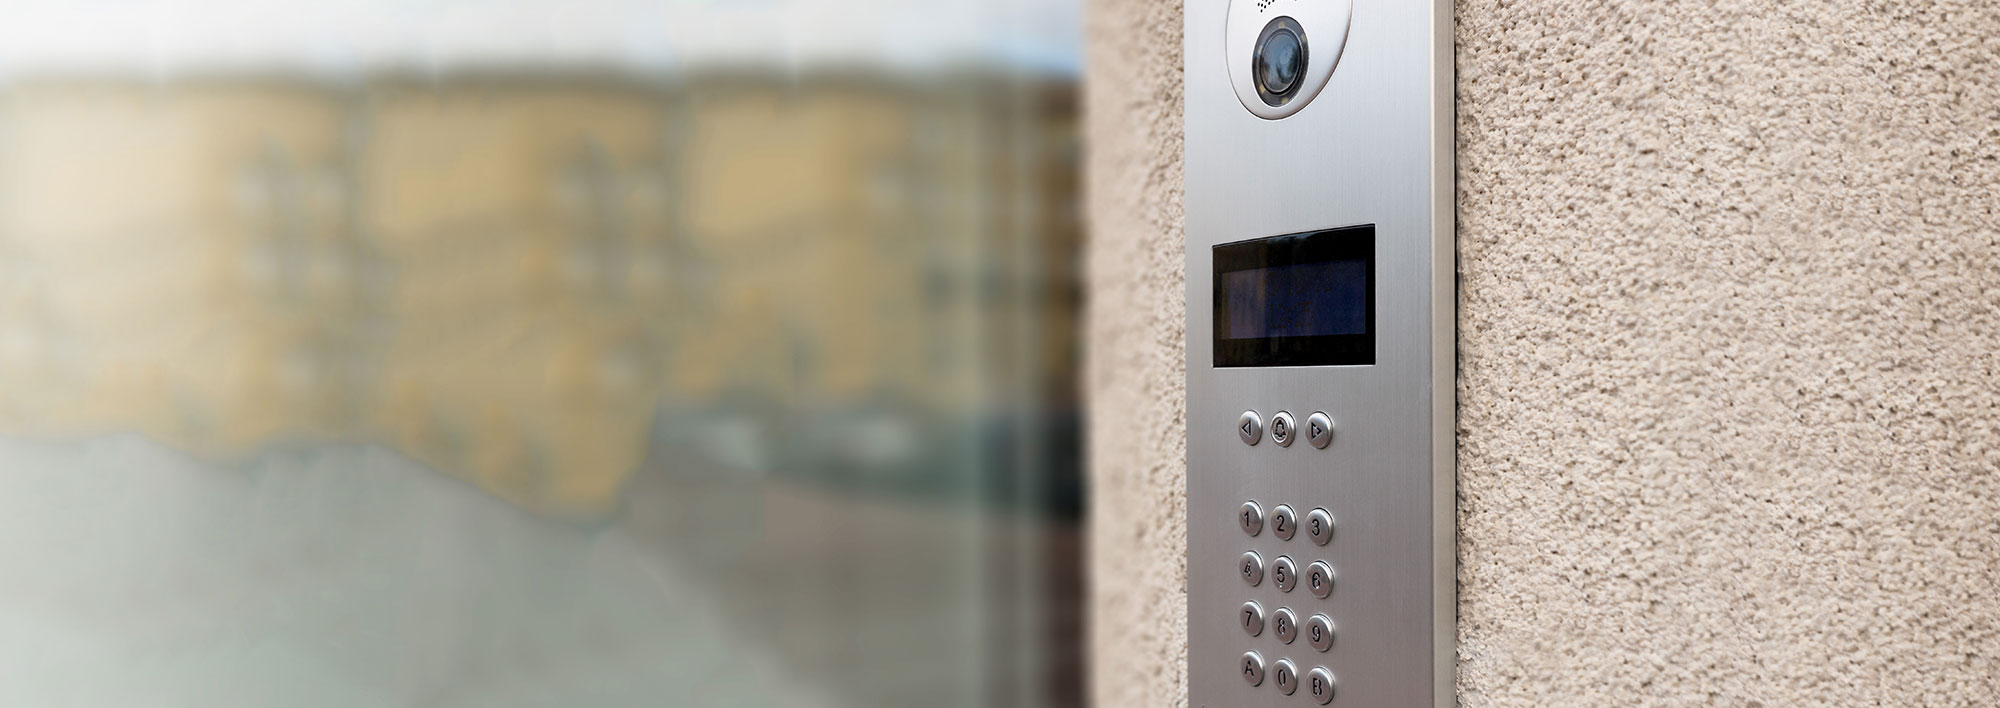 Door Entry Systems Cctv Systems In Widnes Link Alarms